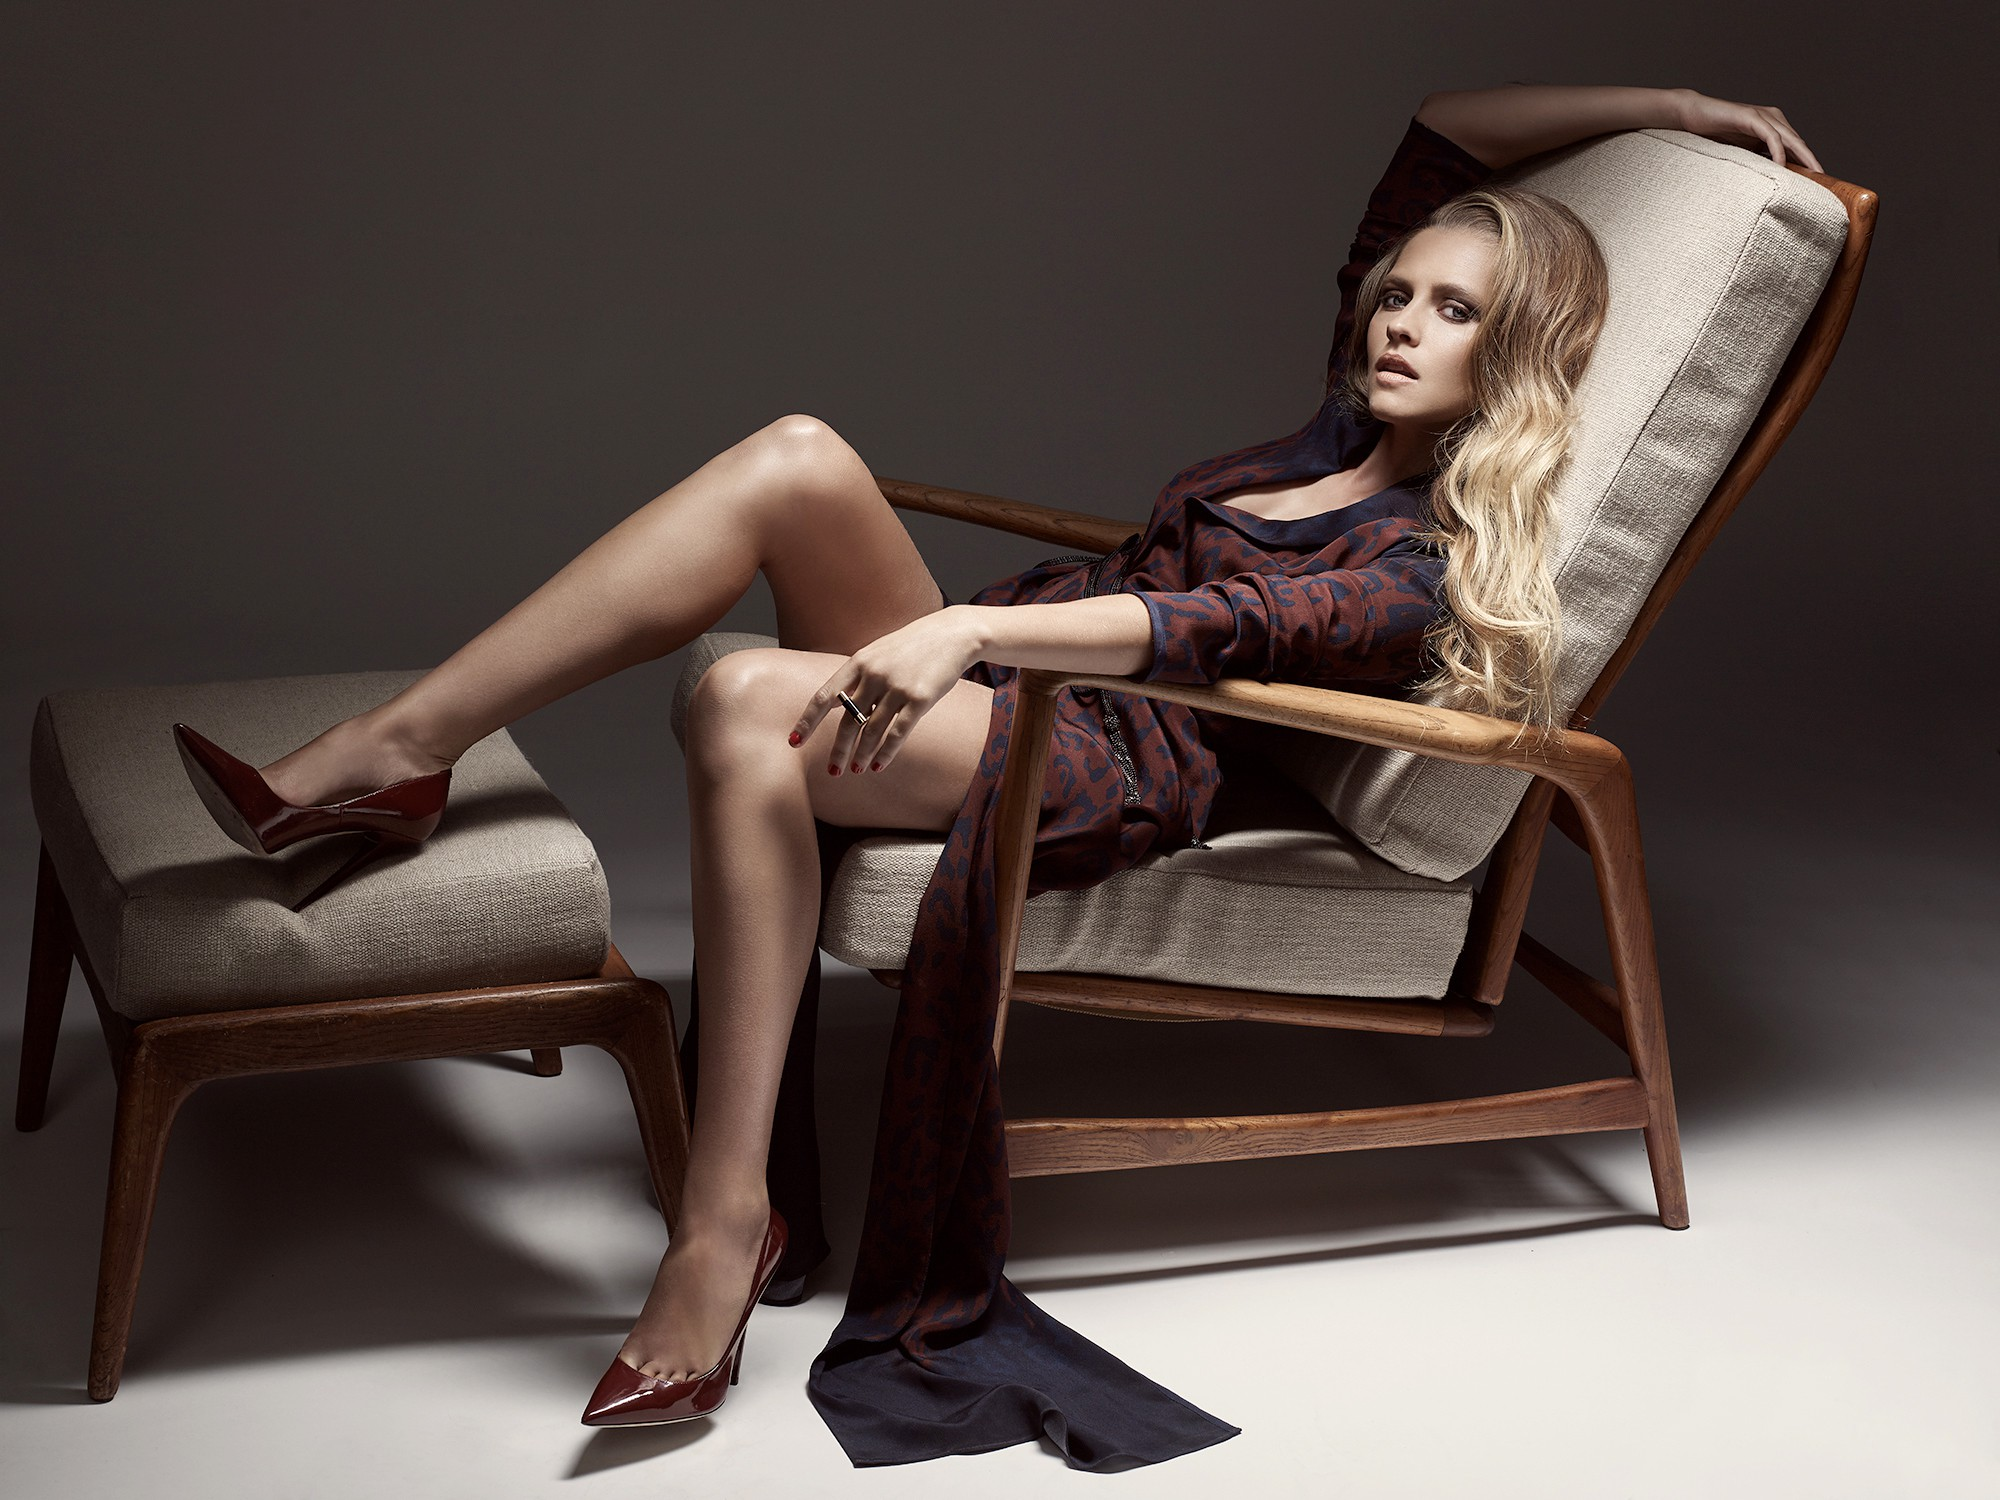 61 Hottest Teresa Palmer Pictures Will Make You Hot under ...